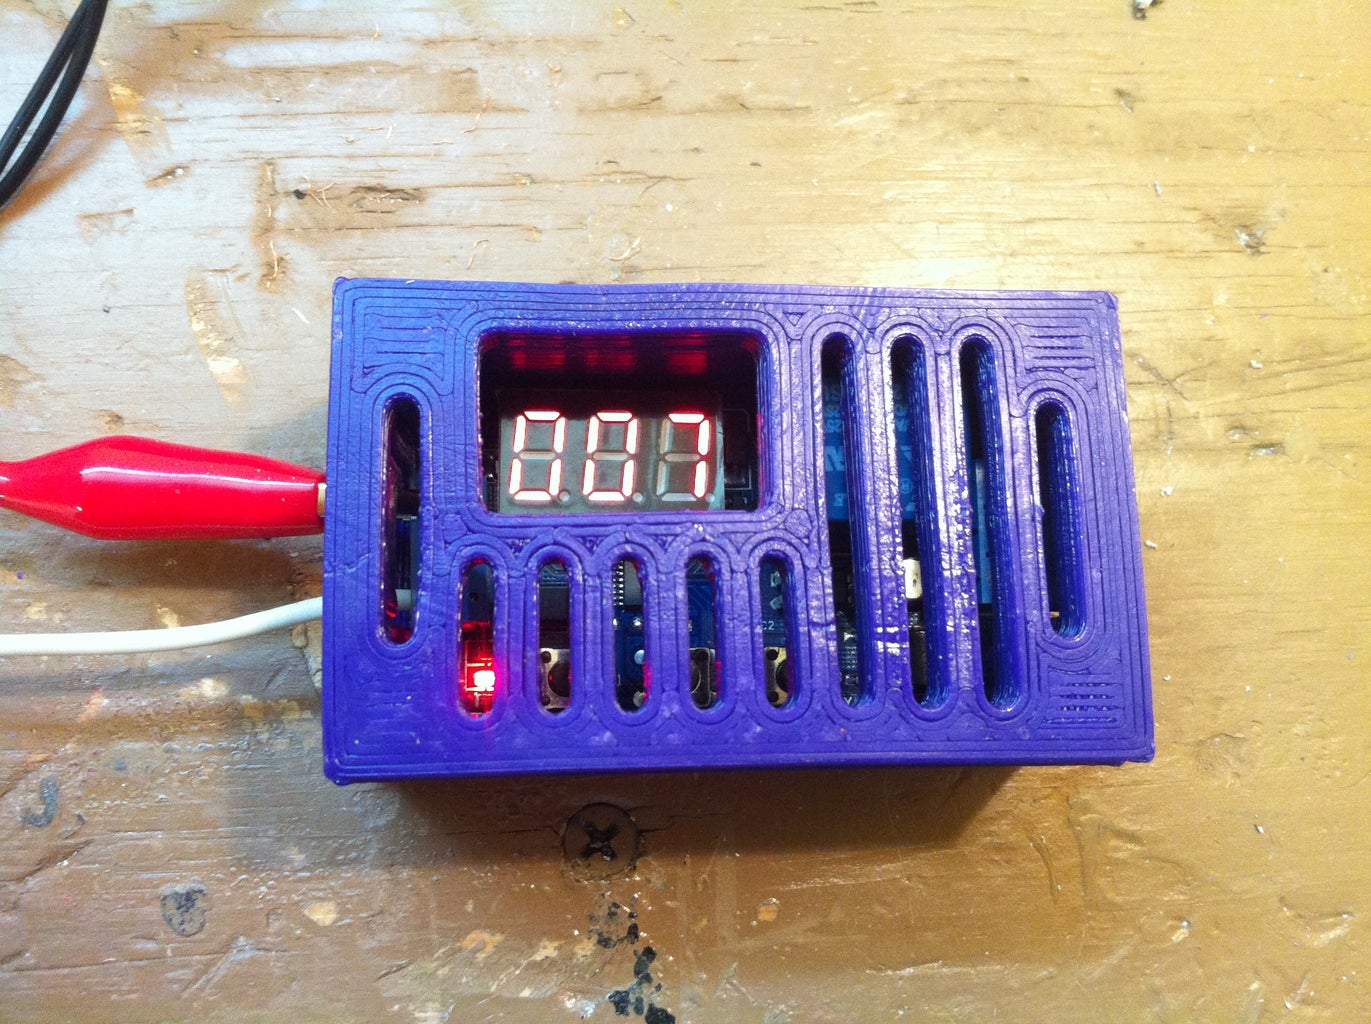 Wire Up the Digital Timer & Solvent Pump